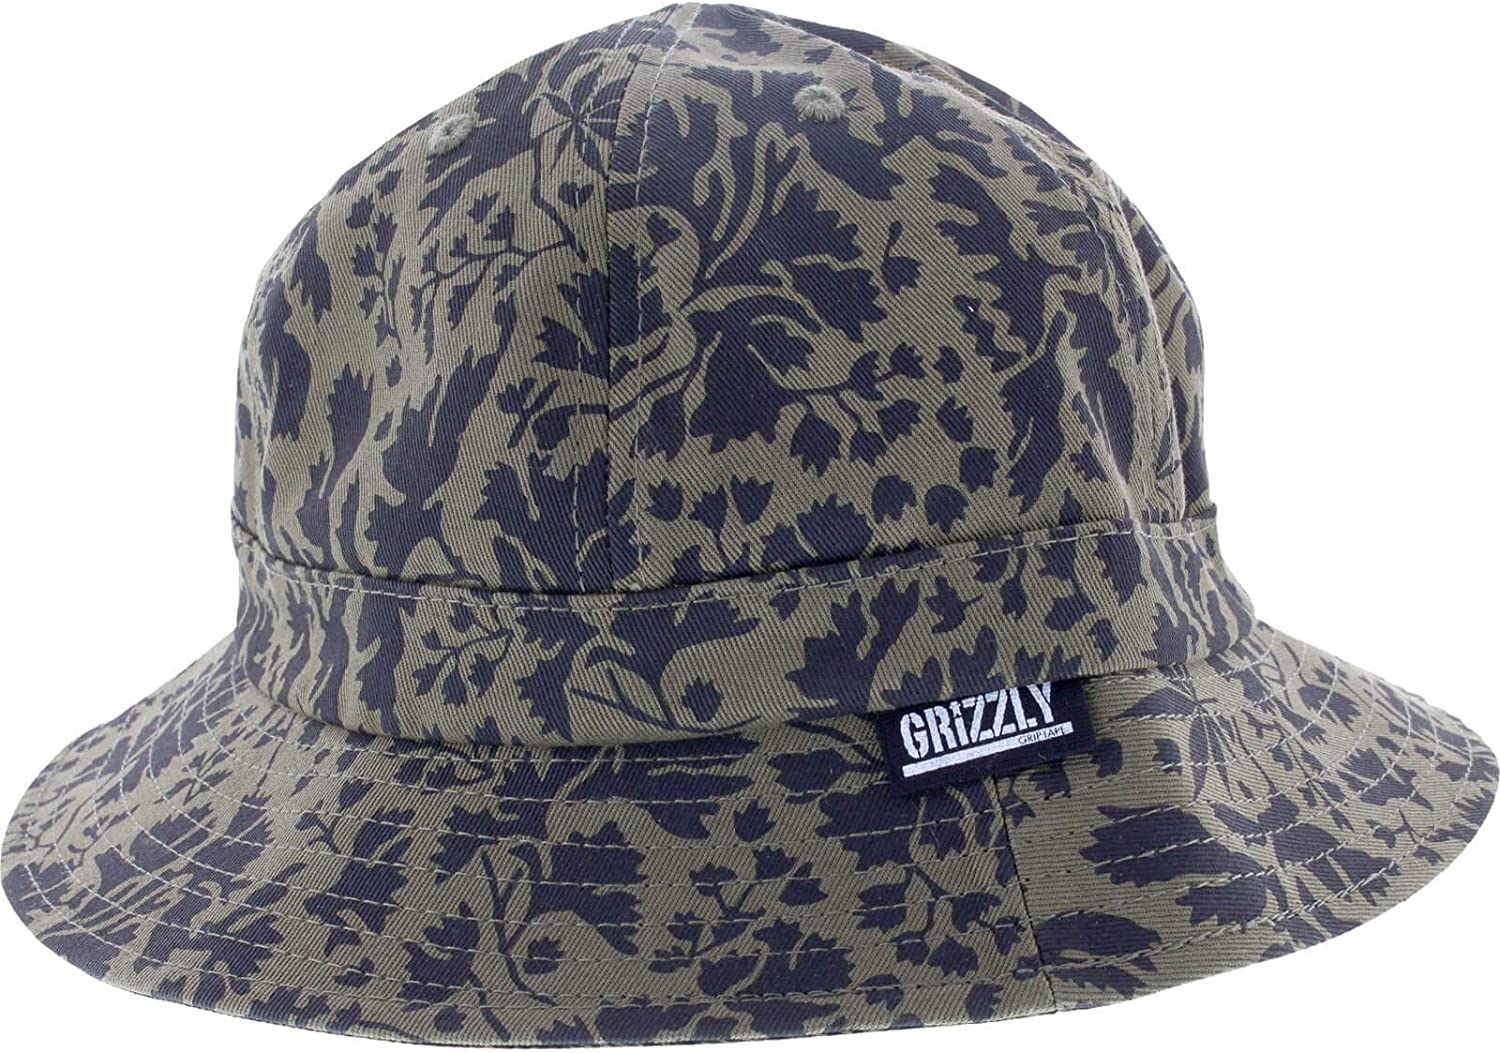 Grizzly Springfield Camuflaje Cubo S/m-Green Skate Sombrero ...